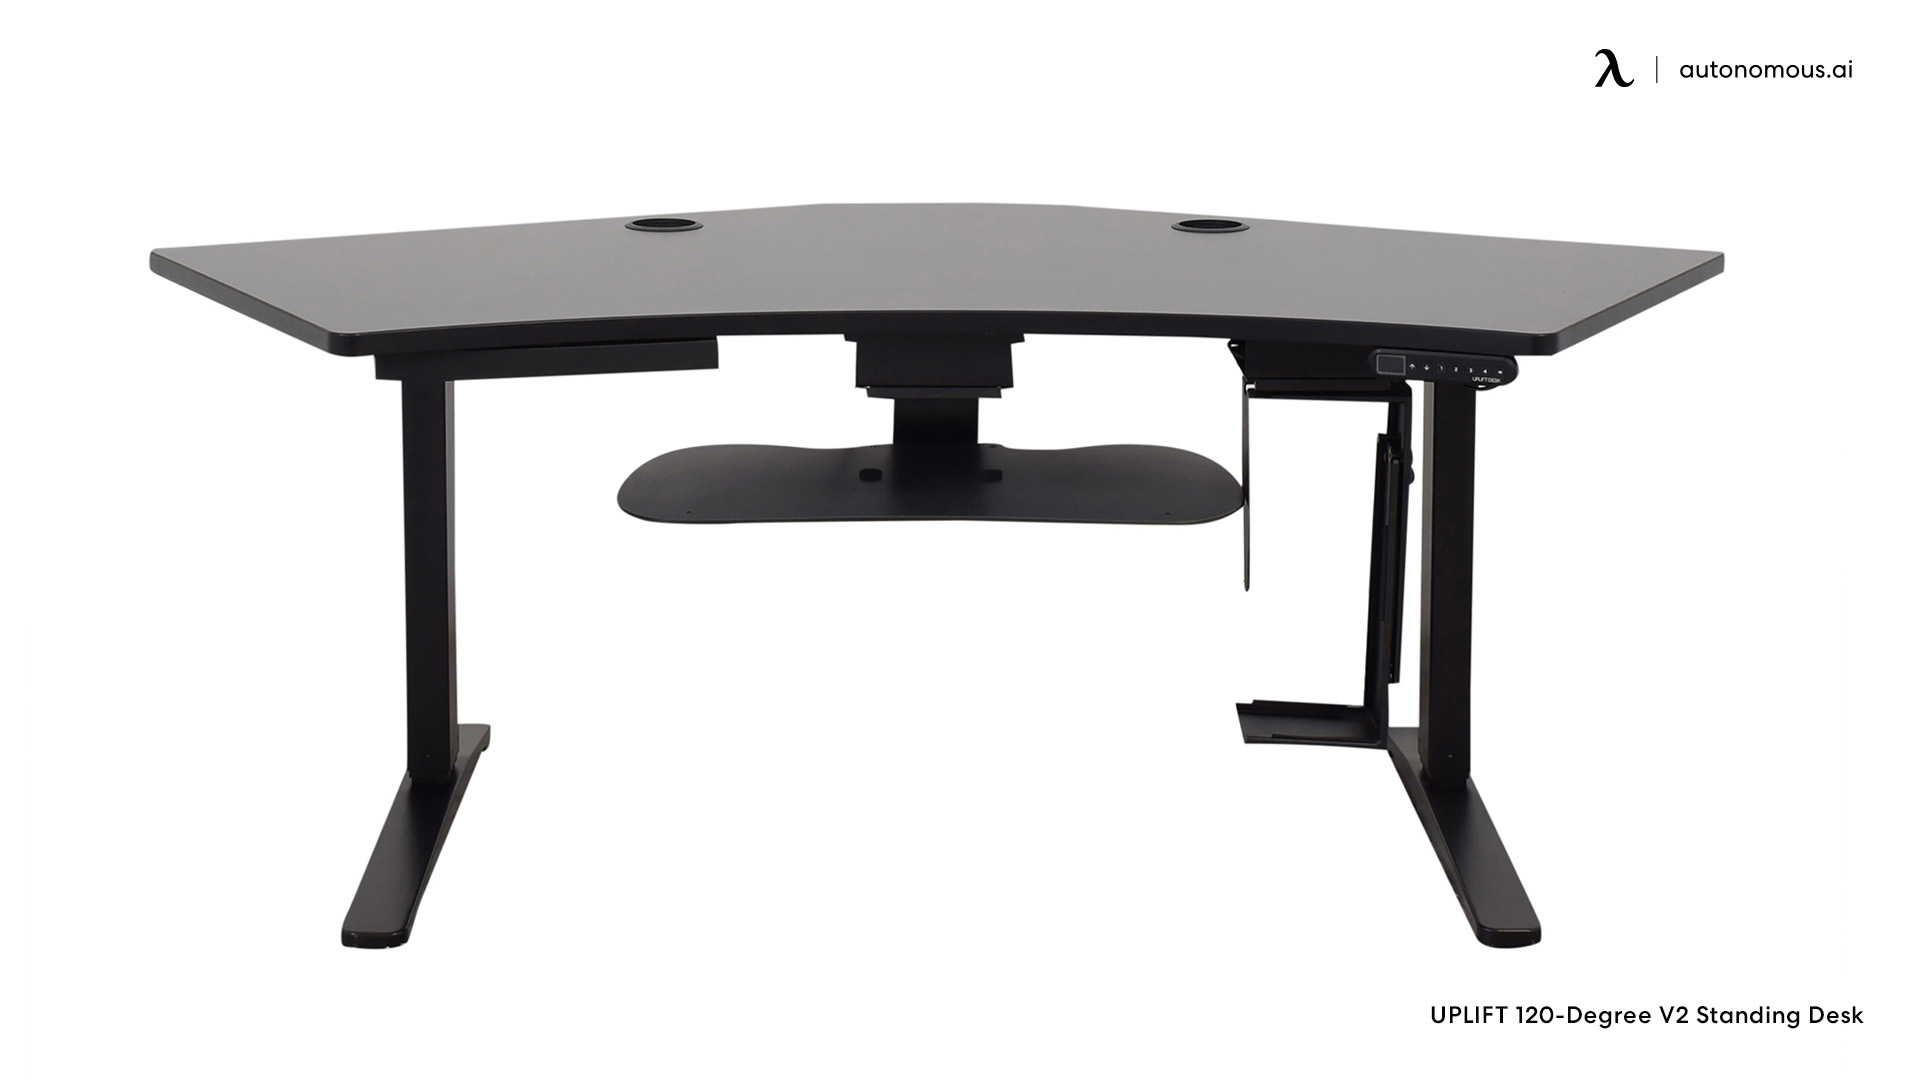 The Height Adjustable Craft Table from UPLIFT